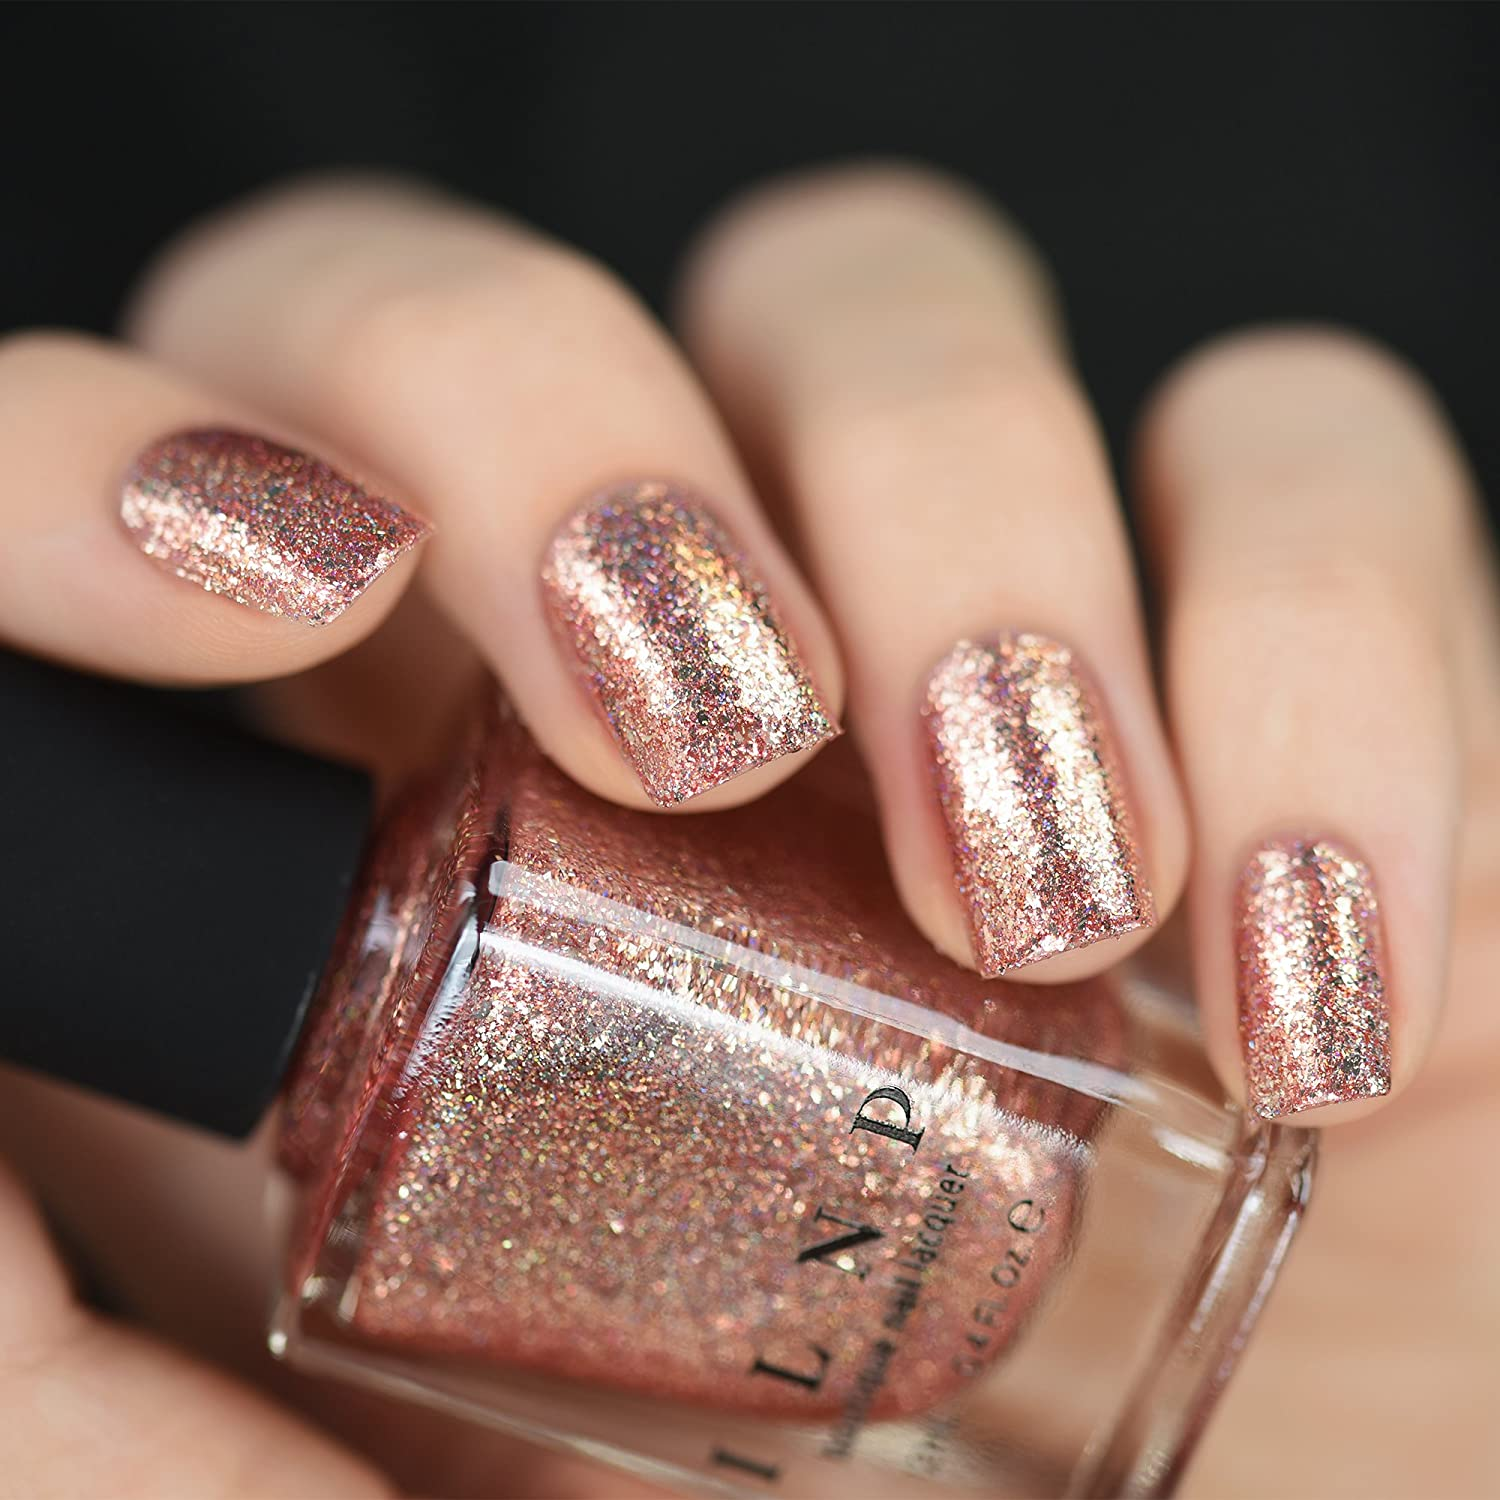 Buy Ilnp Juliette Rose Gold Holographic Nail Polish Online at Low ...